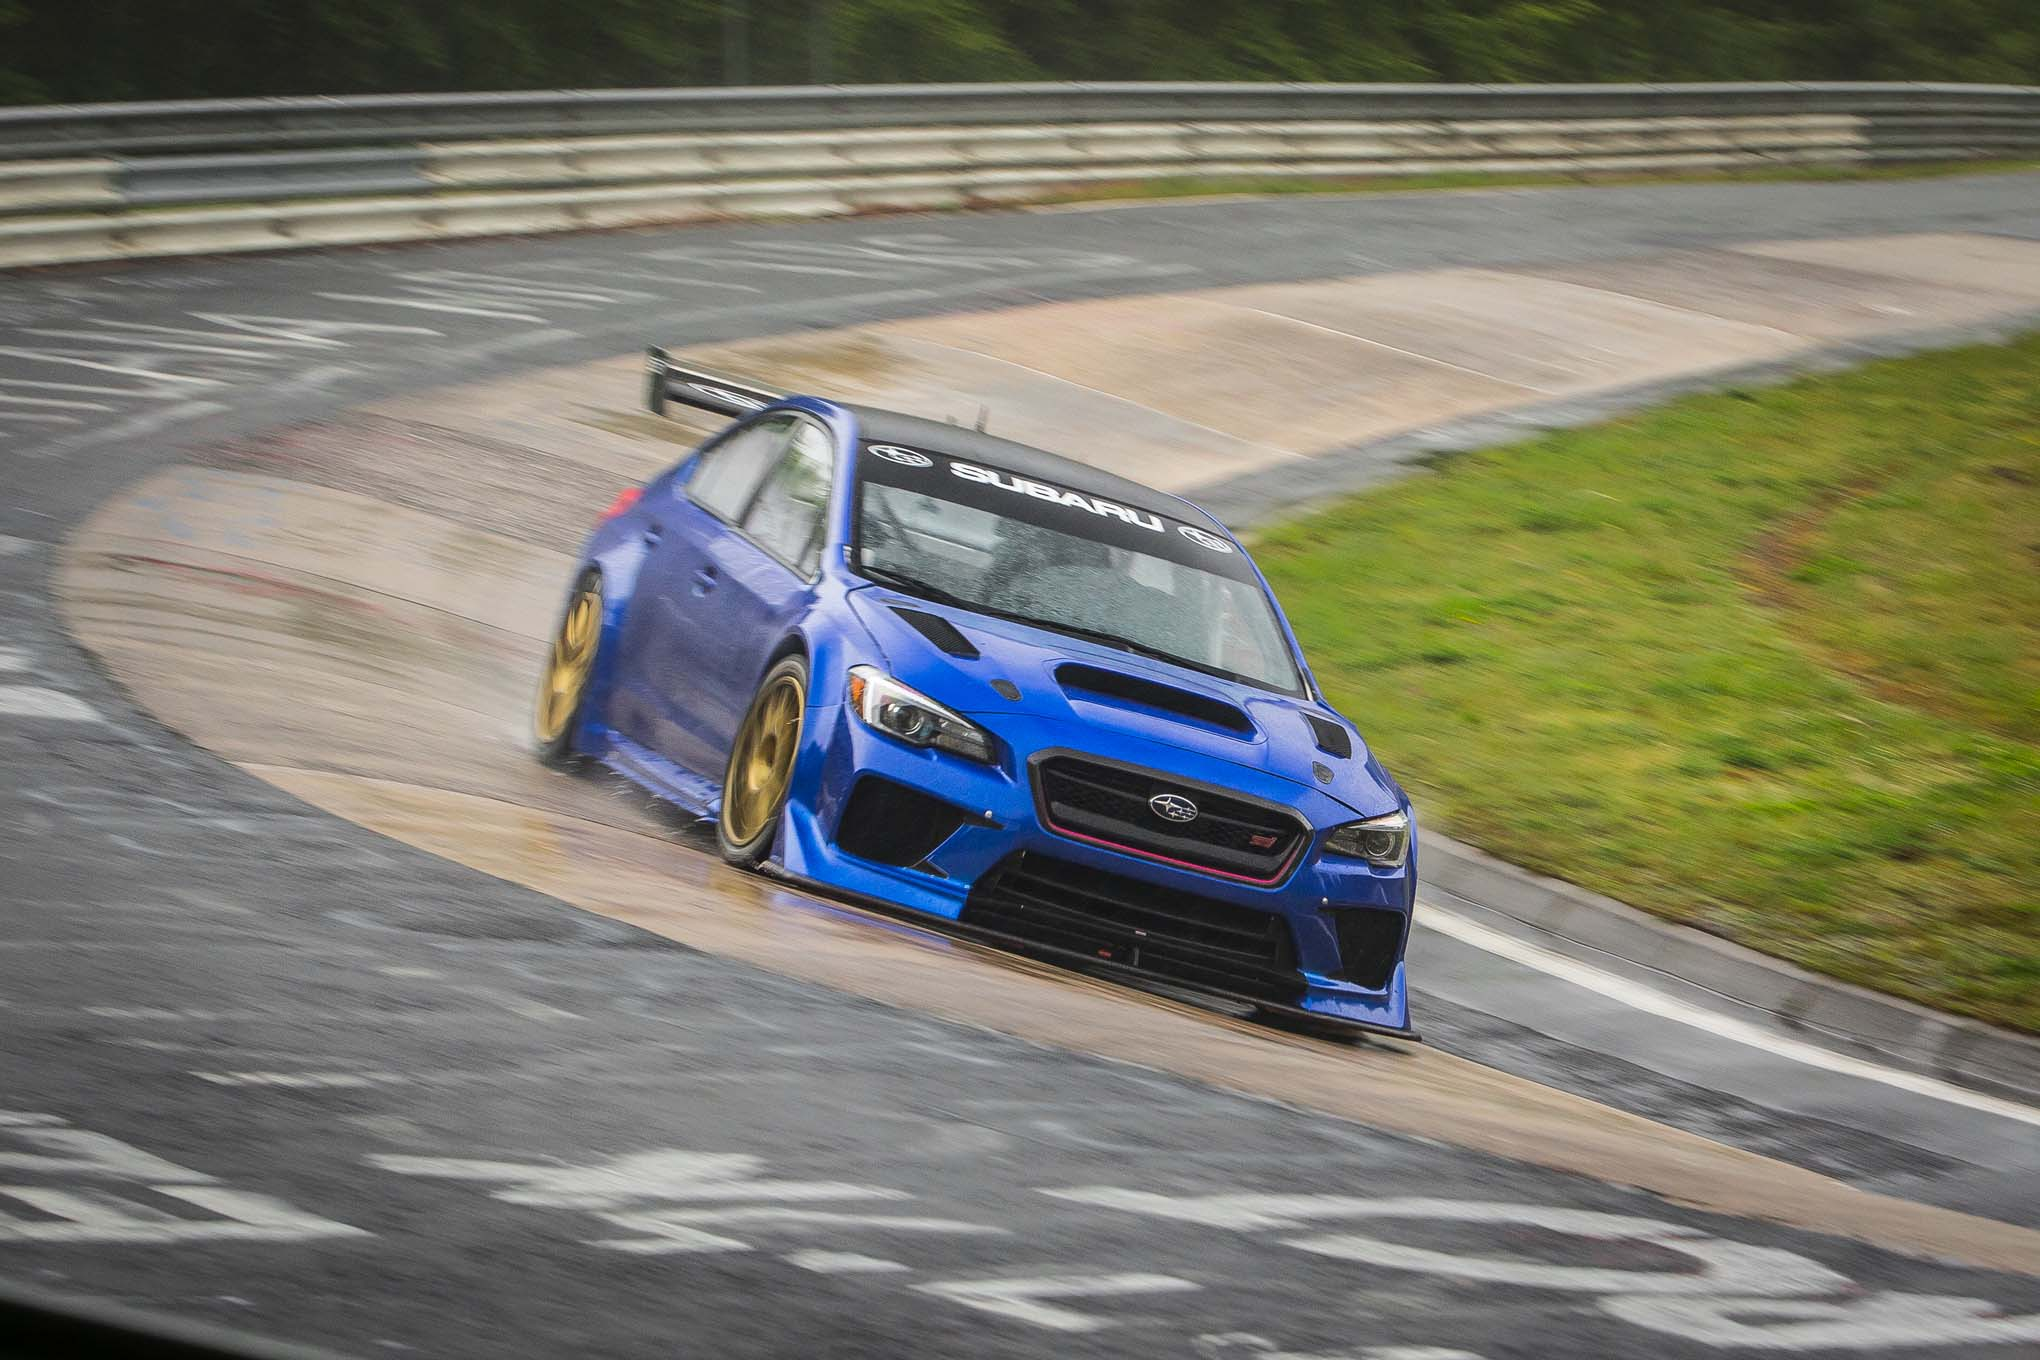 I Did Get A Chance To Learn About The Subaru Wrx Sti Ra Record Attempt Race Car As Prodrive S Project Manager Richard Thompson Gave Us Skinny